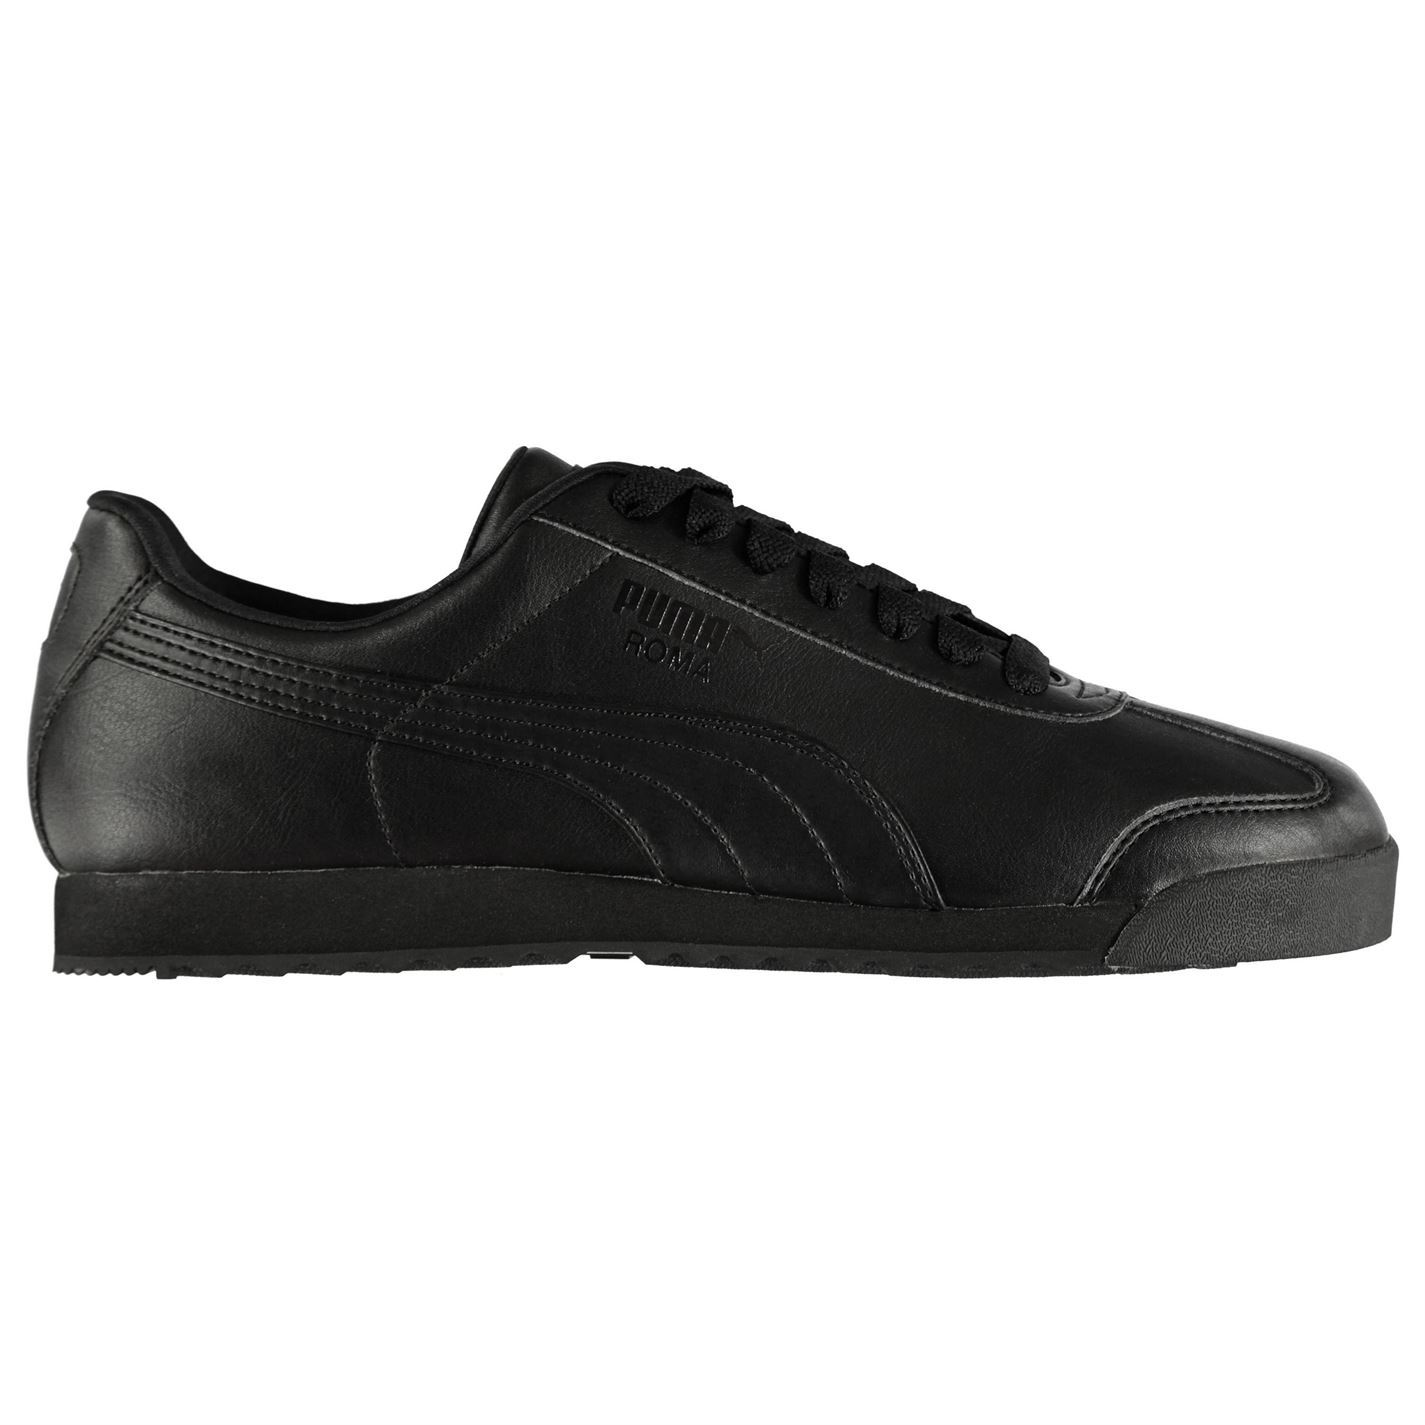 Puma-Roma-Basic-Trainers-Mens-Athleisure-Footwear-Shoes-Sneakers thumbnail 8